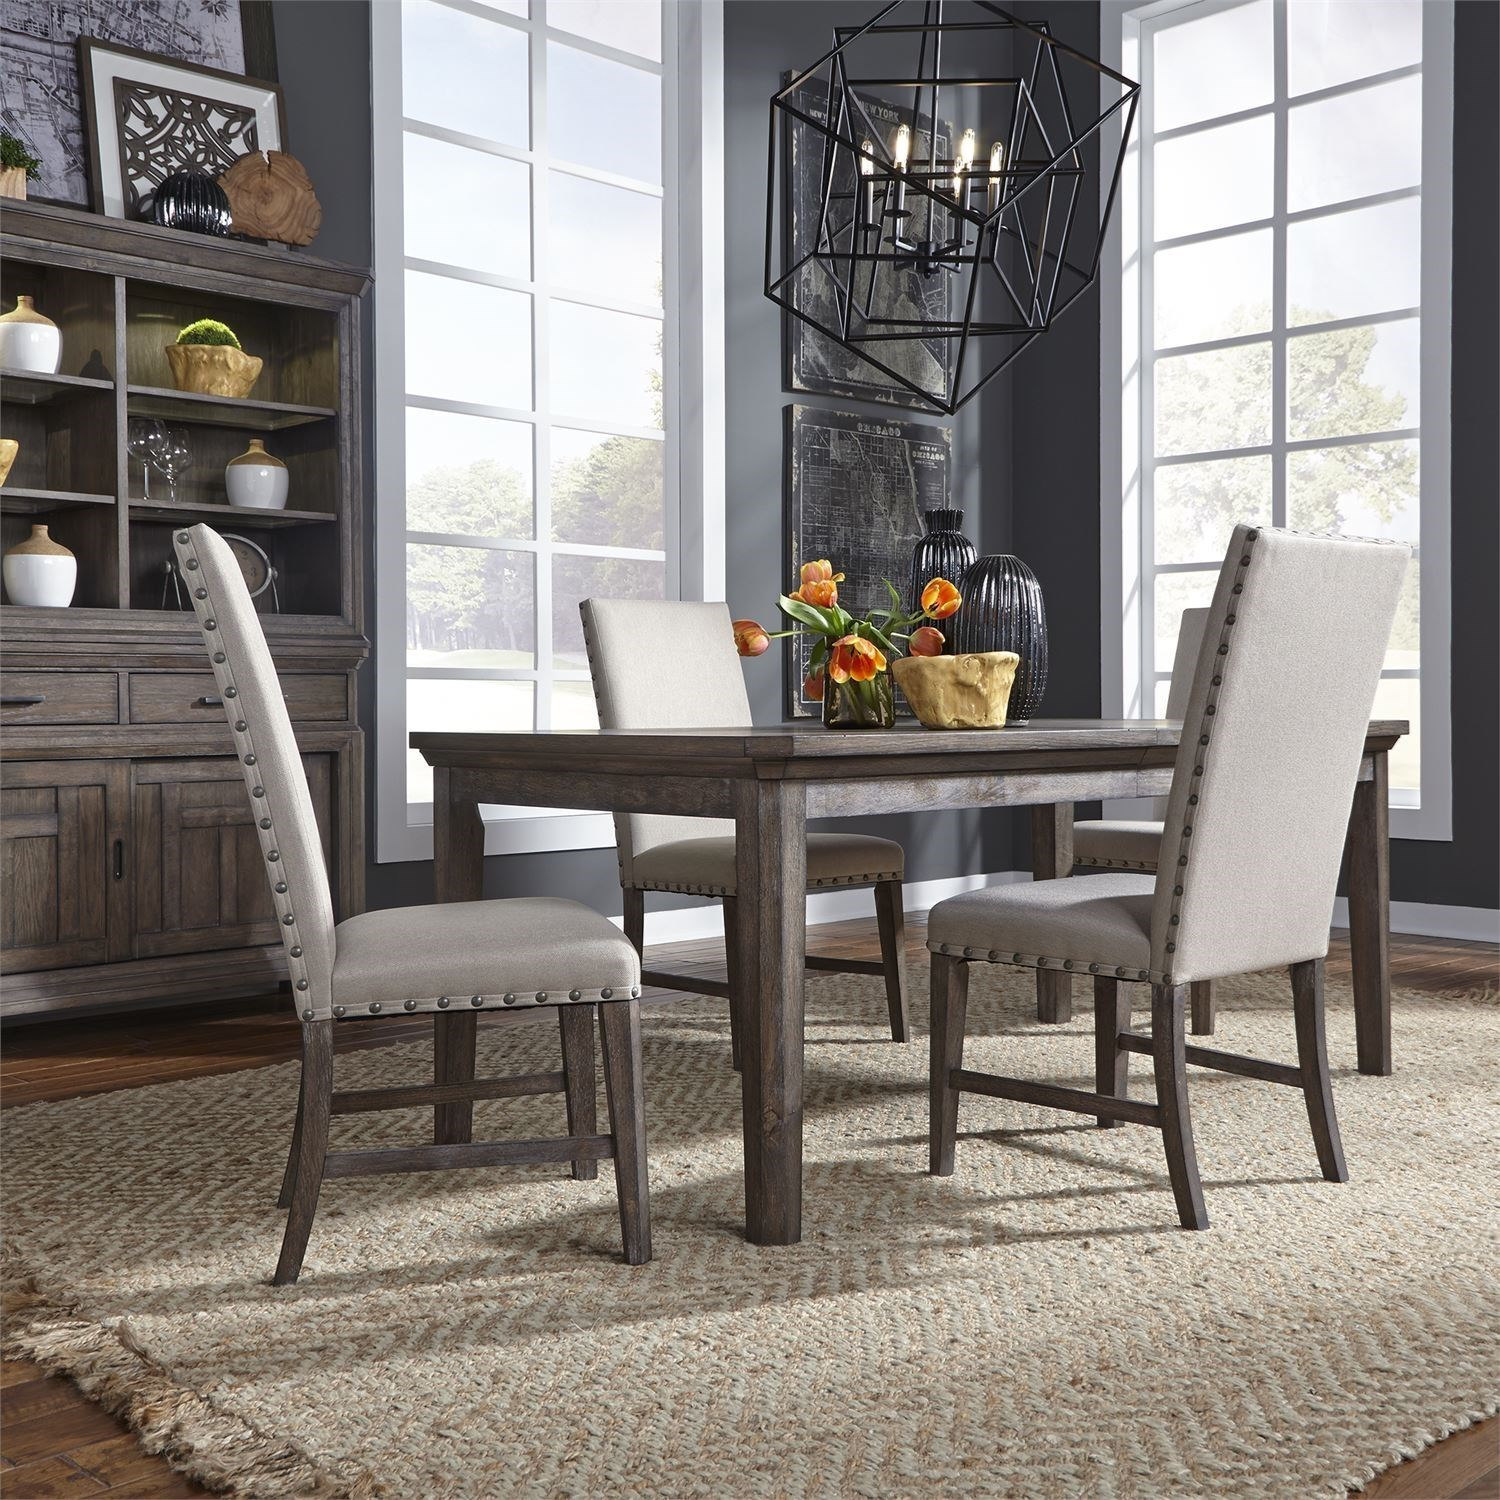 Artisan Prairie 5-Piece Rectangular Table Set by Liberty Furniture at Northeast Factory Direct